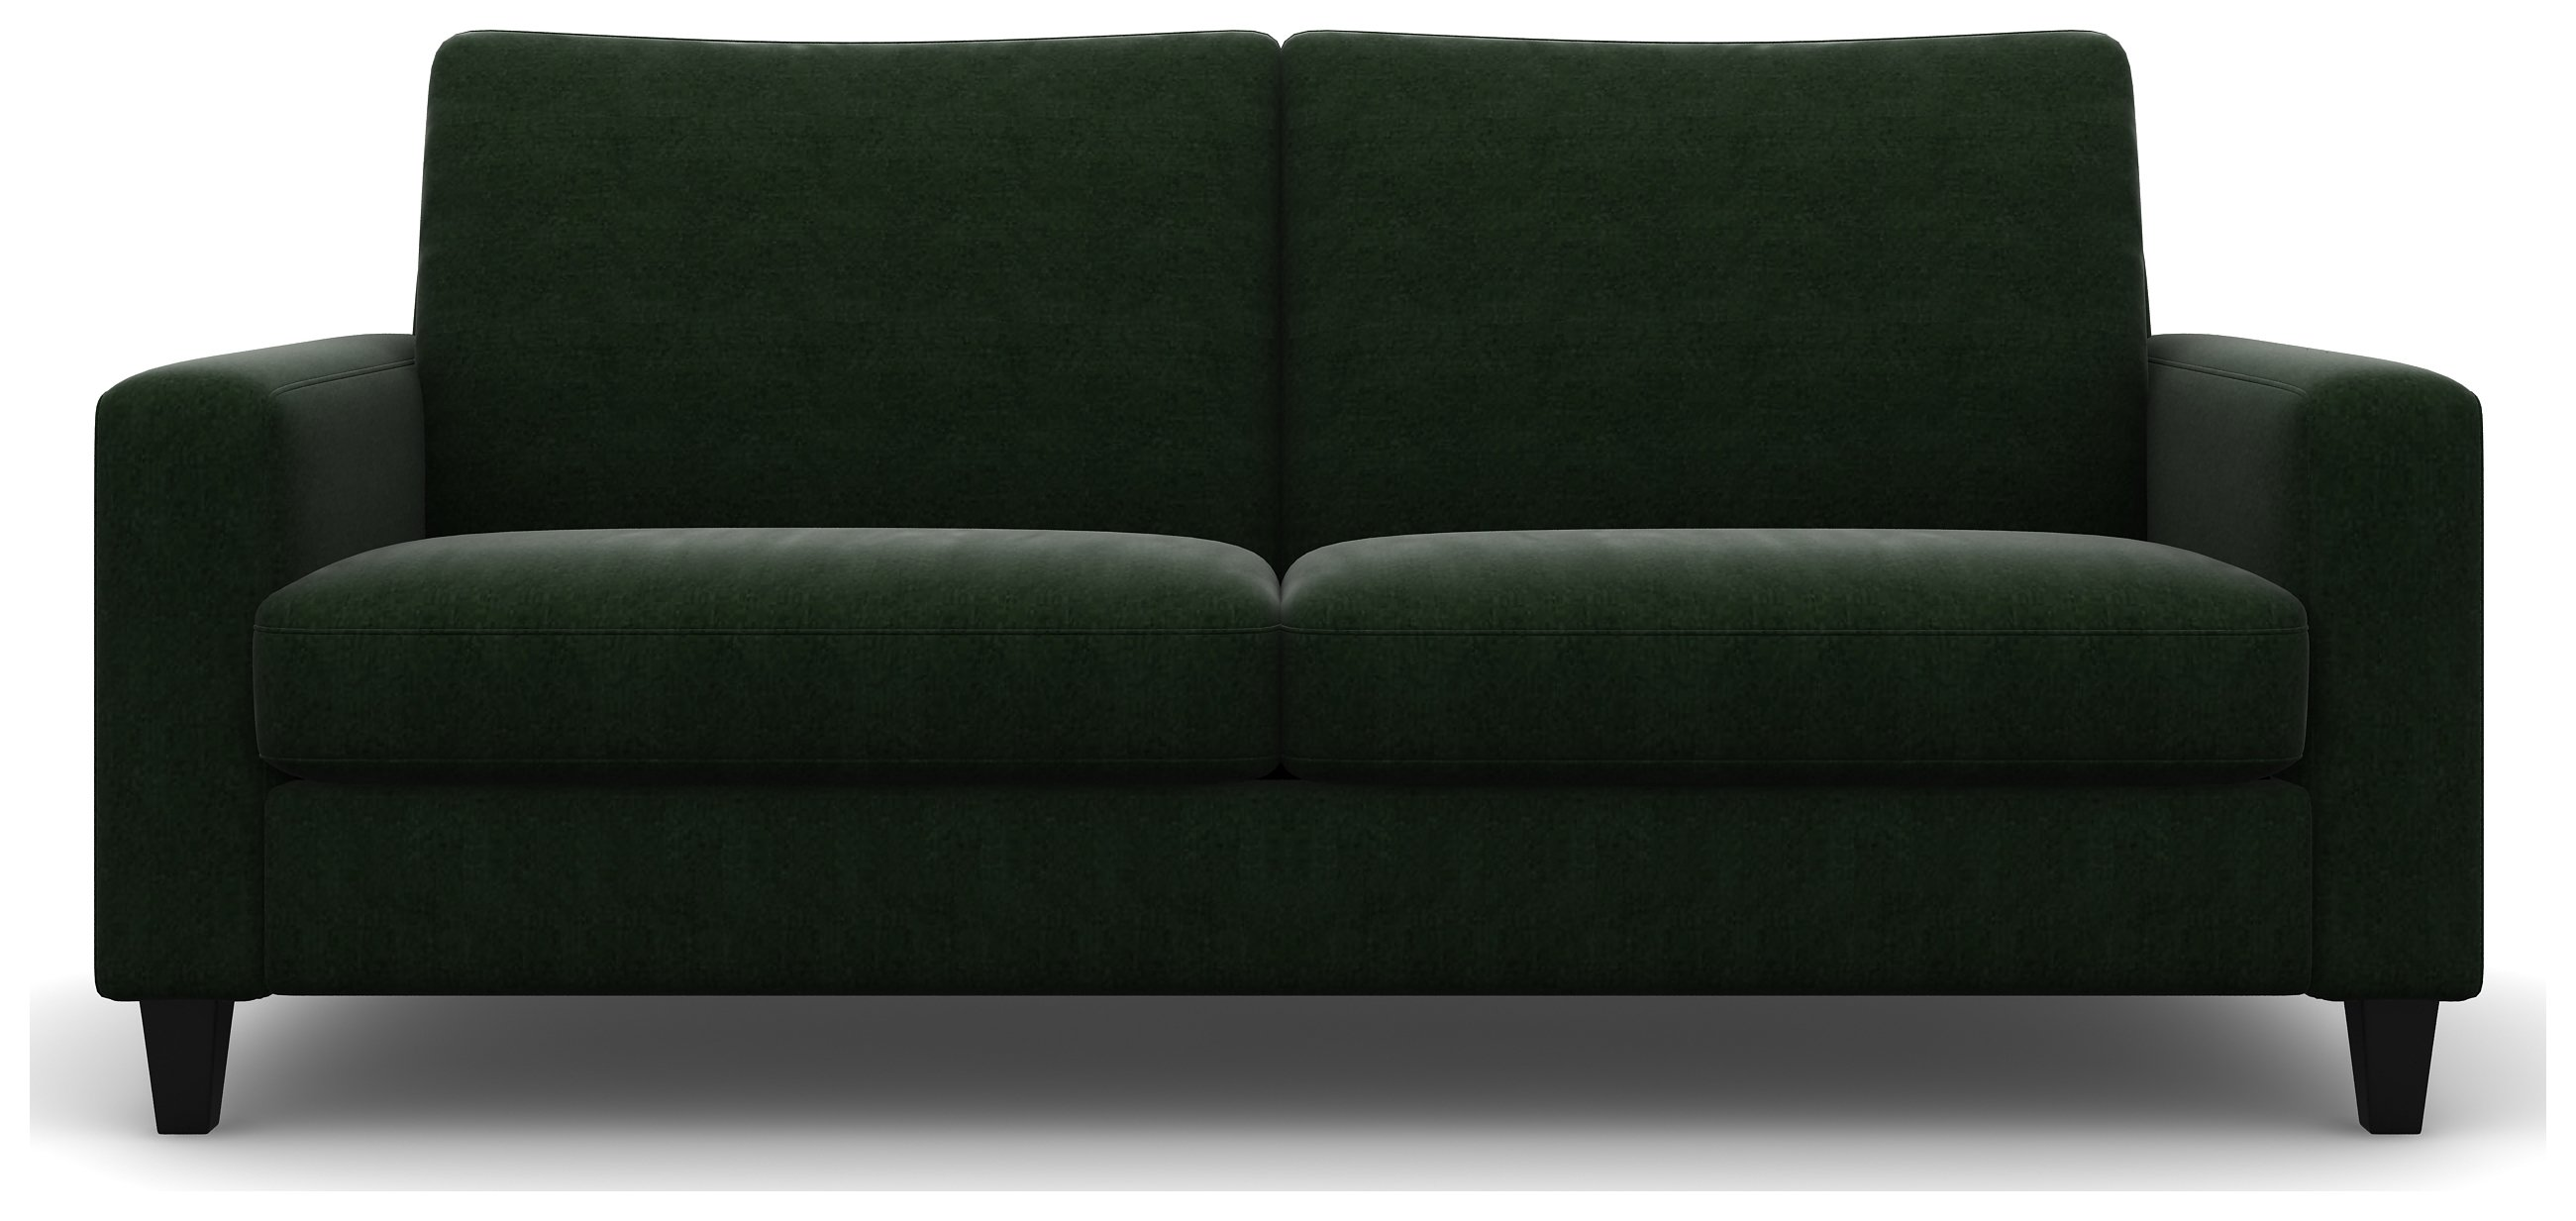 Heart of House Harrison 4 Seater Fabric Sofa - Forest + Black Legs.